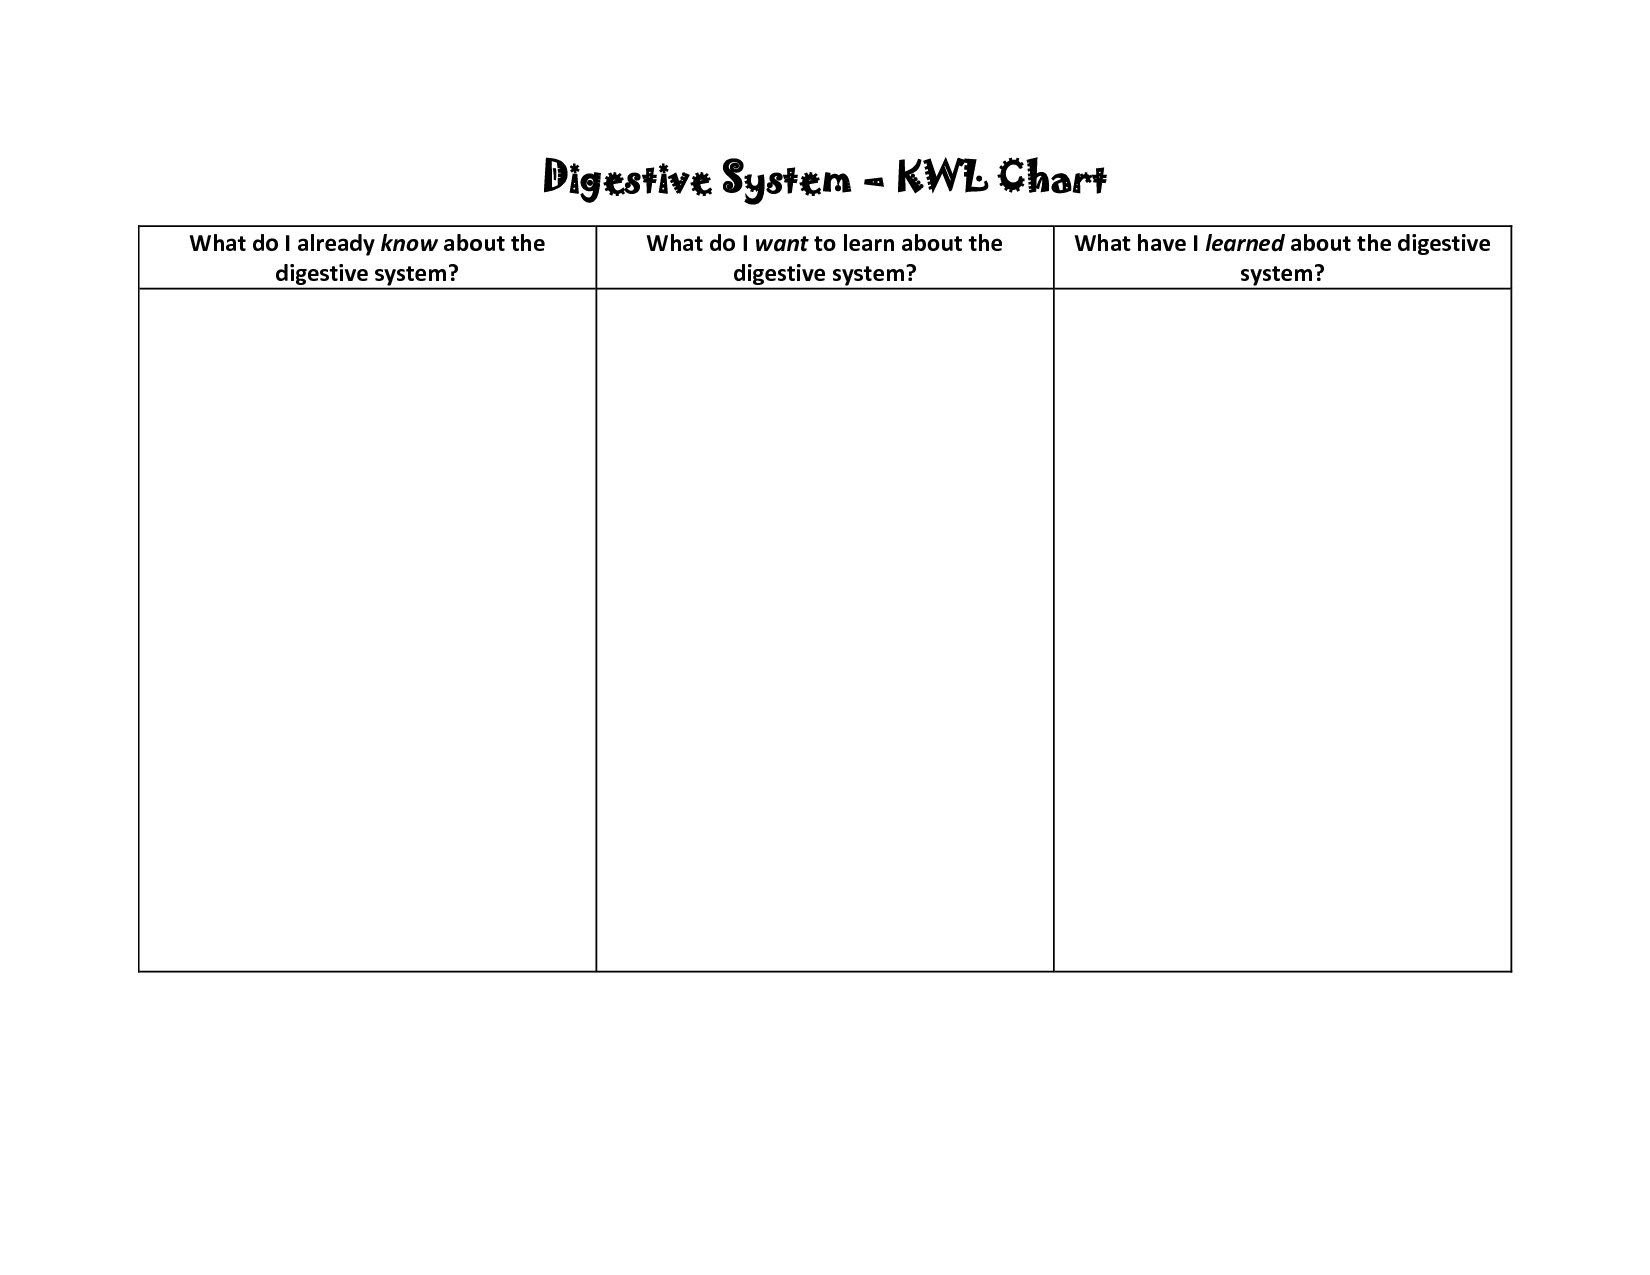 Blank flow chart worksheet digestive system kwl chartwhat do i blank flow chart worksheet digestive system kwl chartwhat do i already know about the ccuart Images